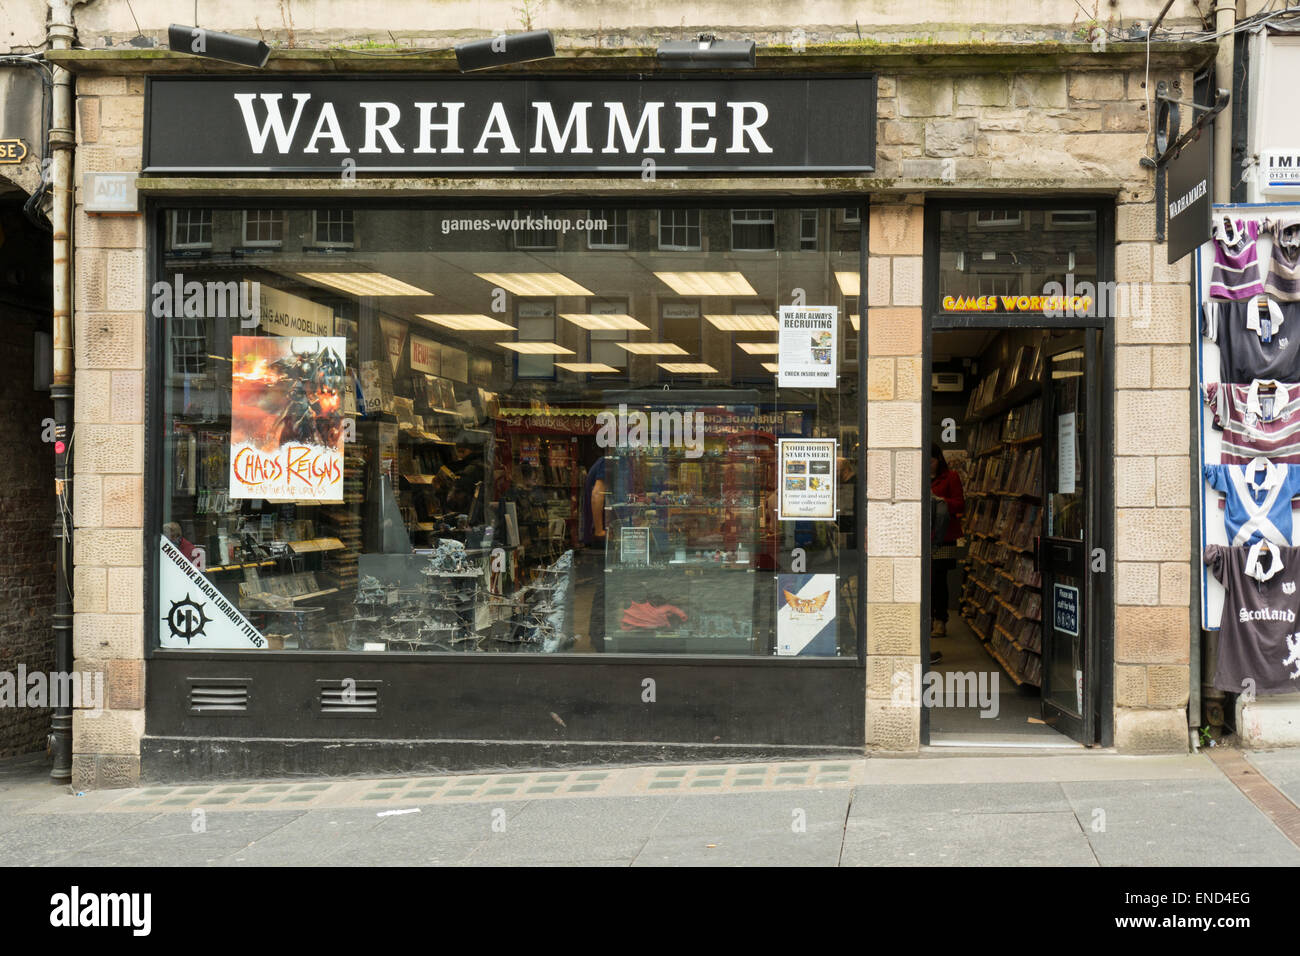 Games Workshop Warhammer Stock Photos And Warhammer Stock Images Alamy